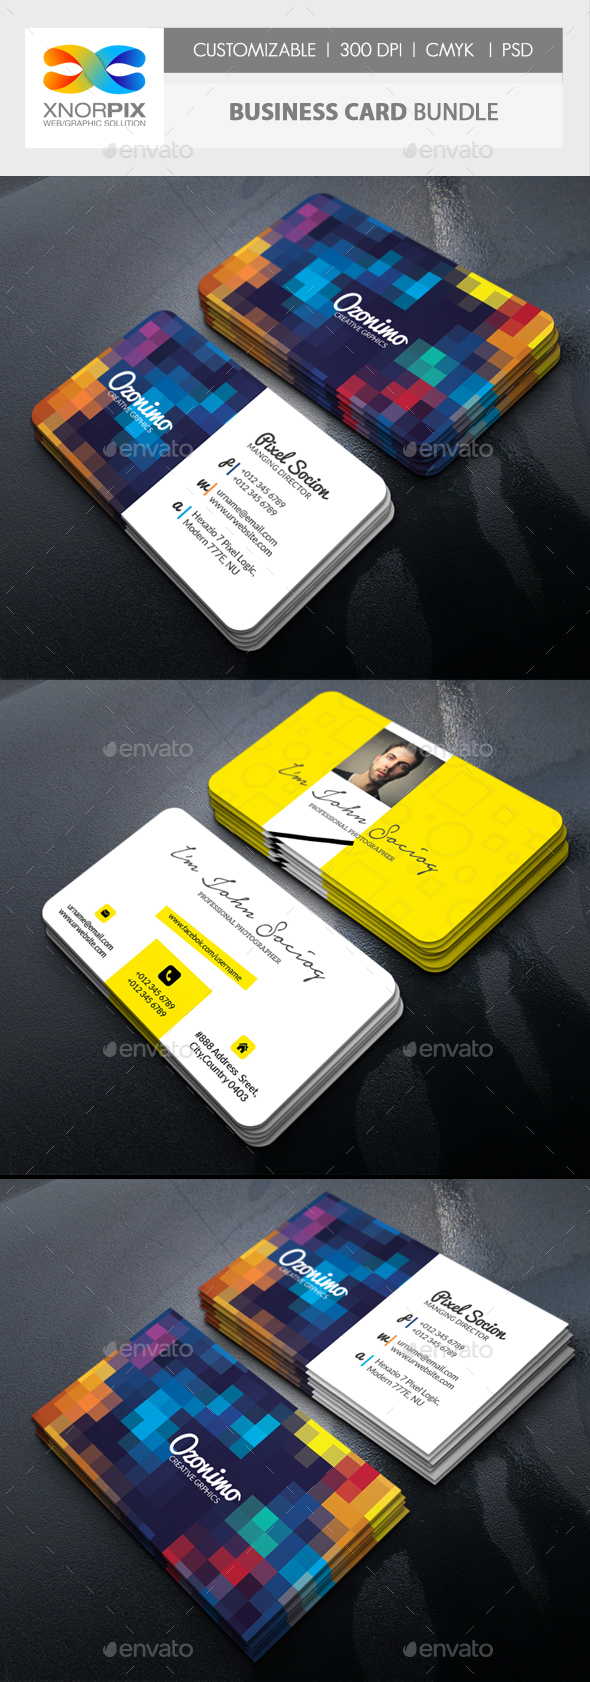 Business Card Bundle by -axnorpix | GraphicRiver